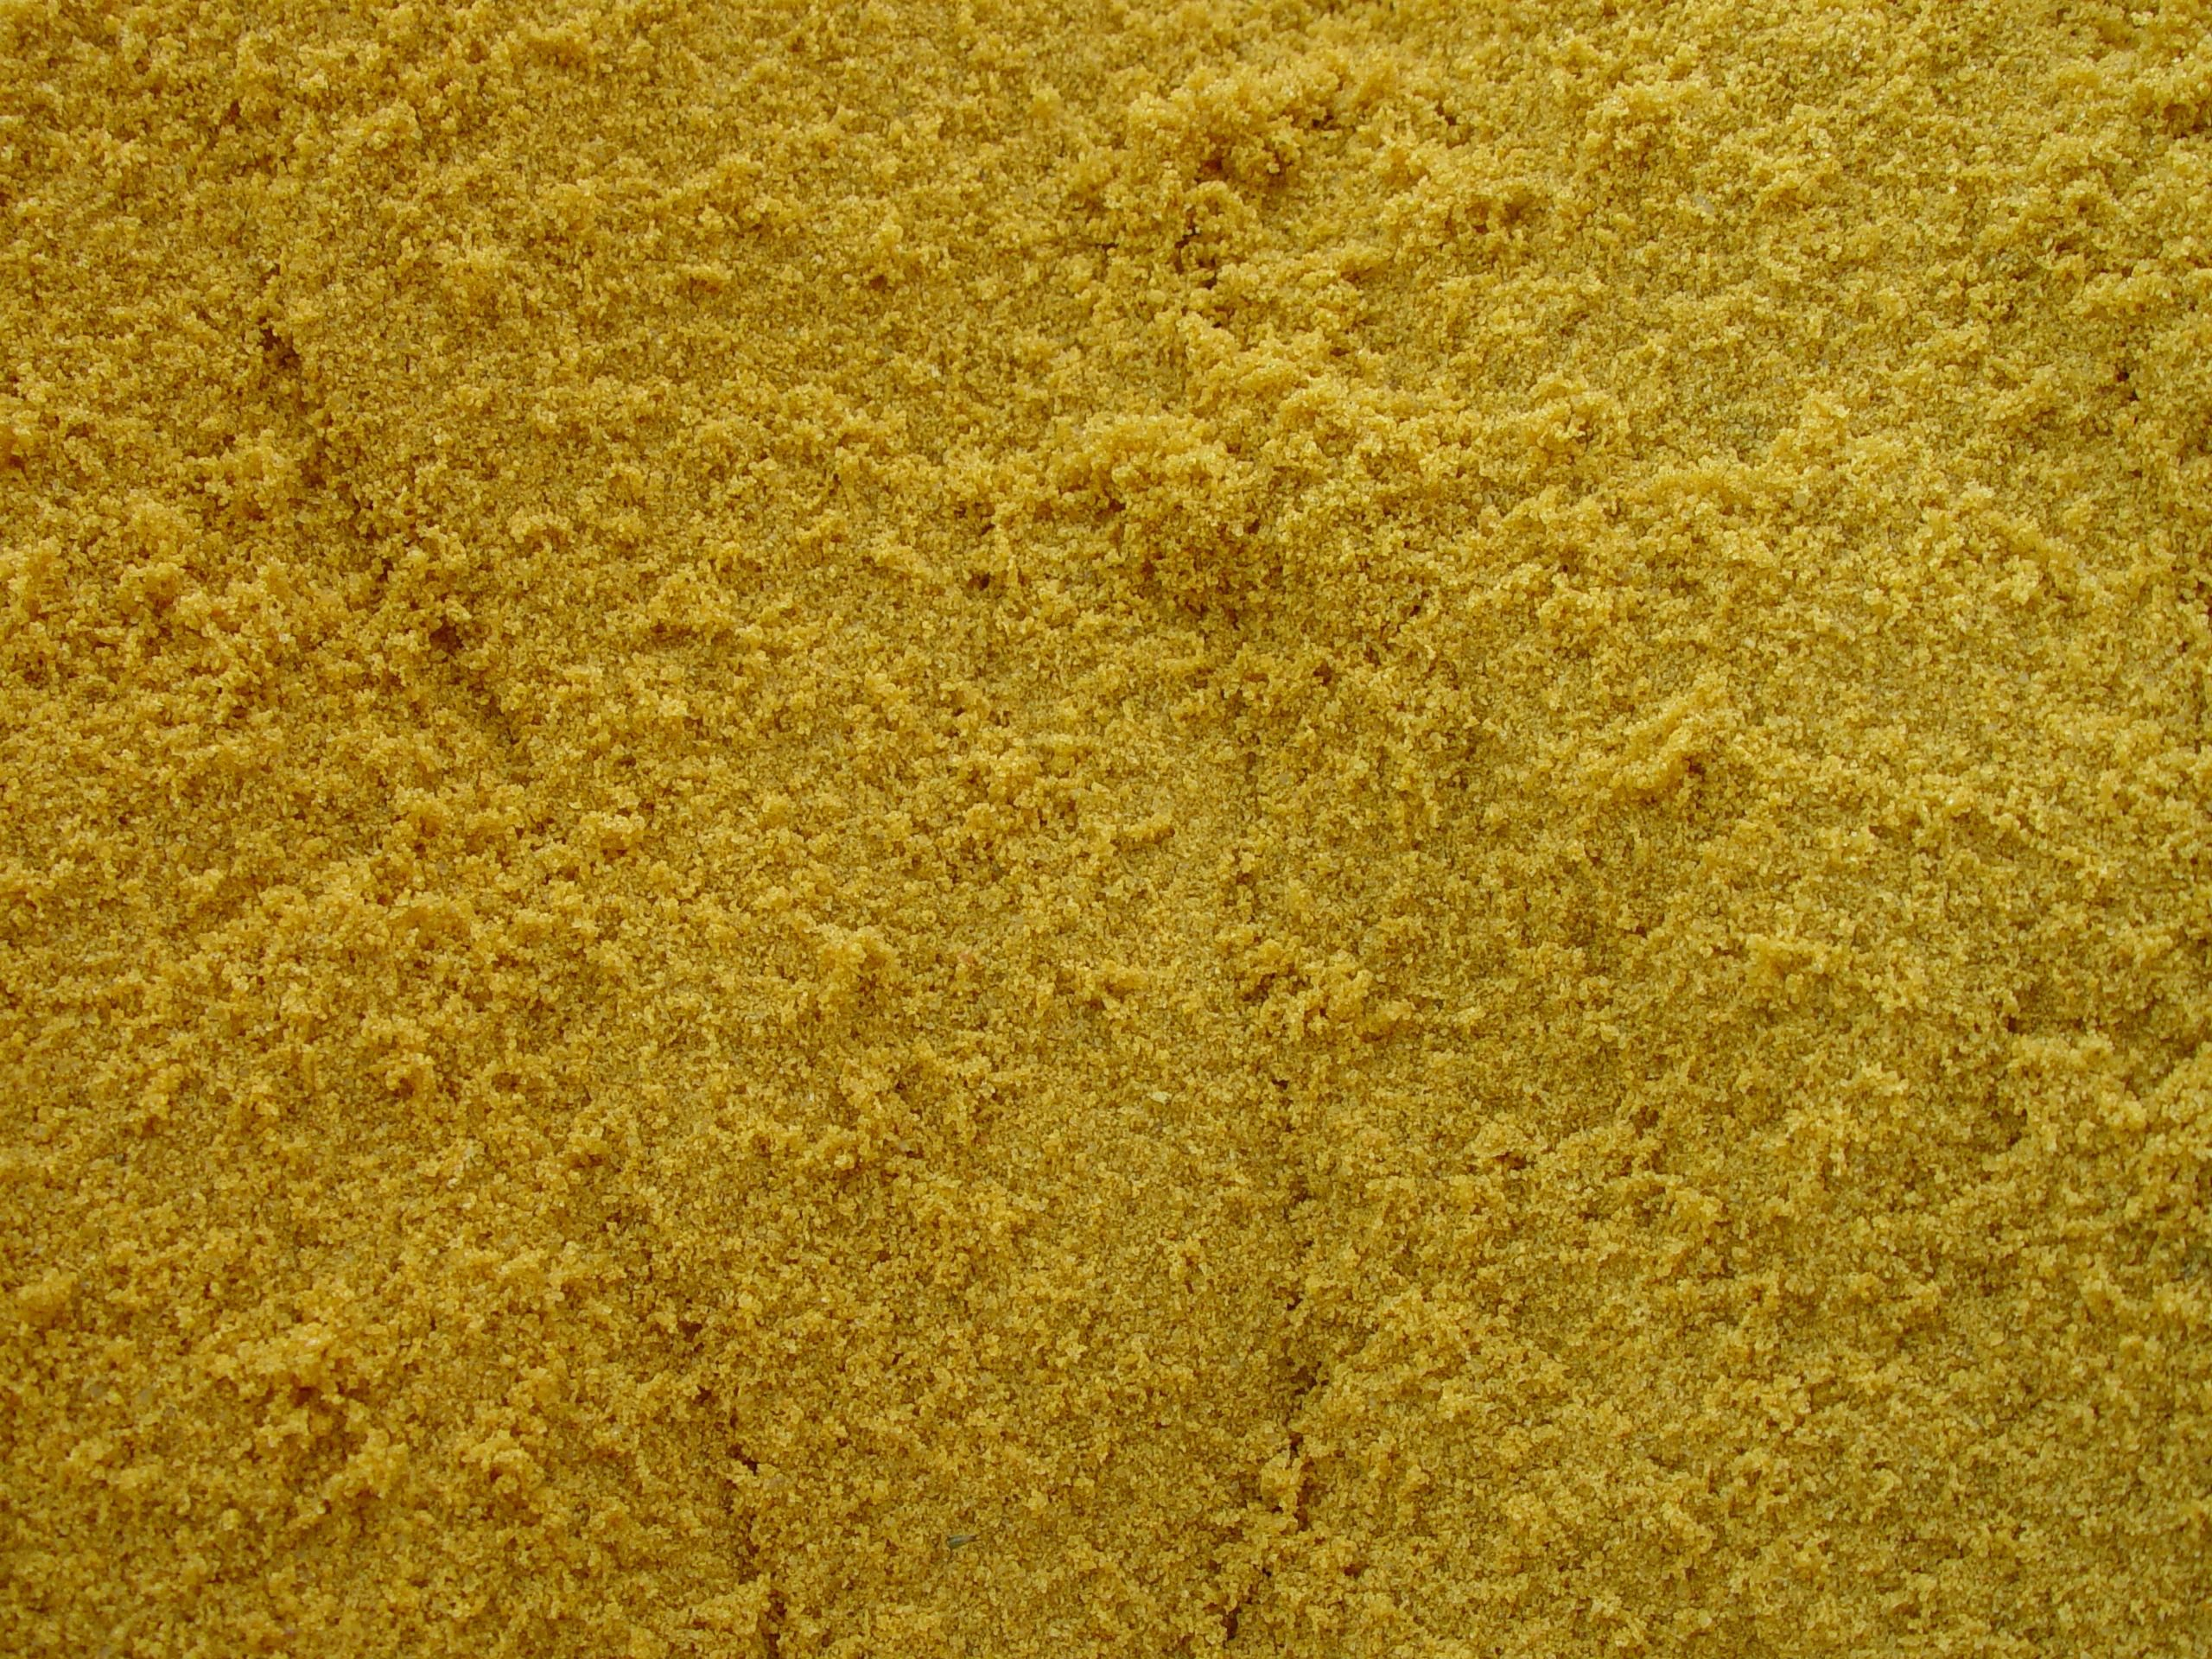 texture, sand, download photo, yellow sand